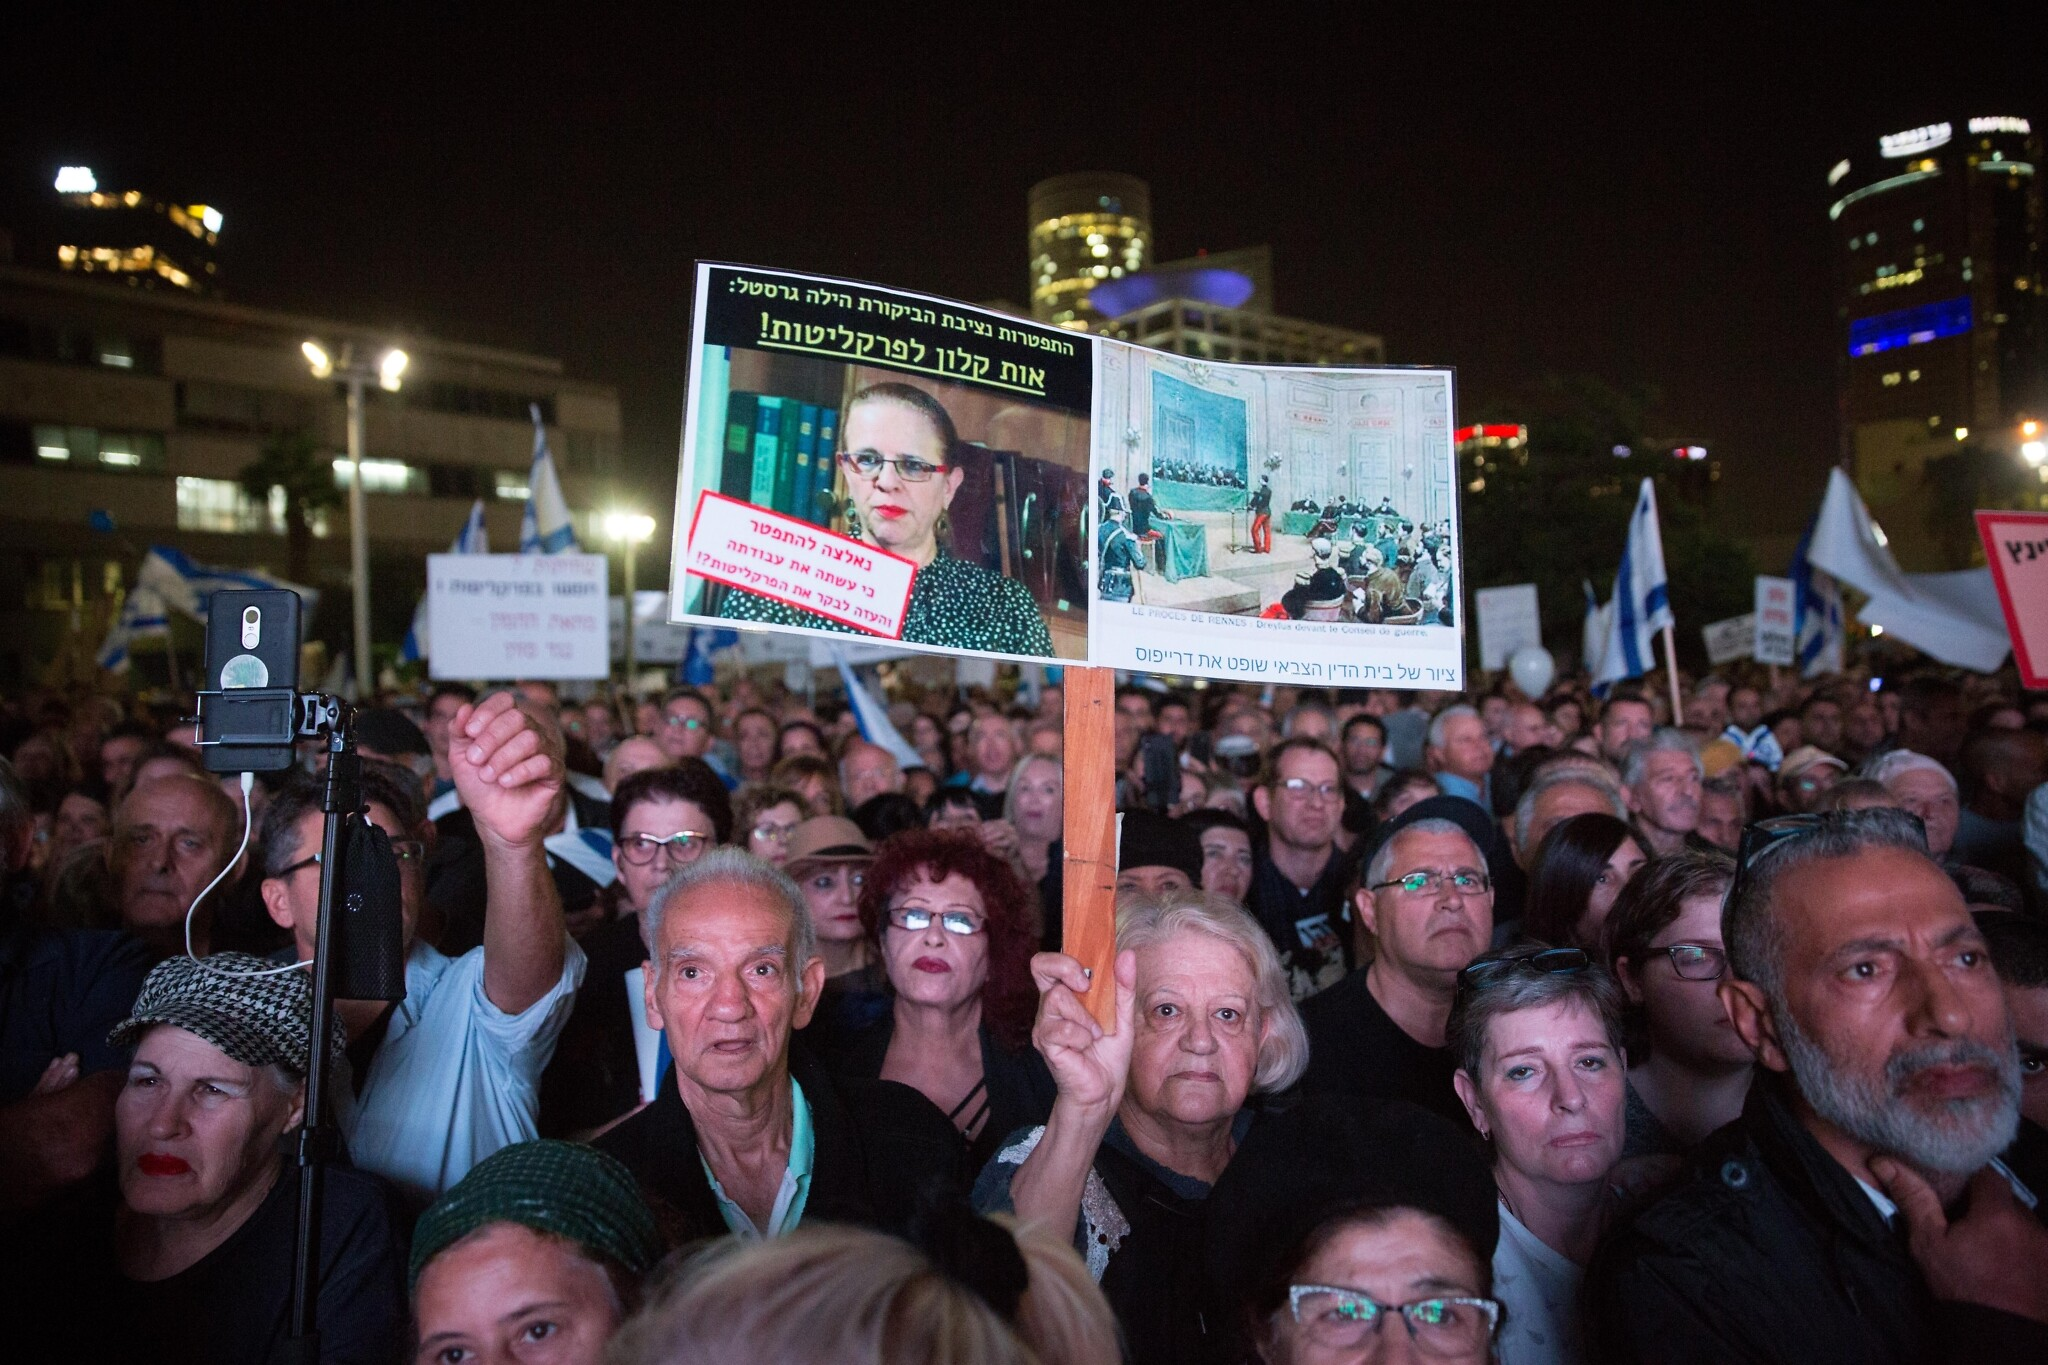 Hammer blow for Benjamin Netanyahu as rally draws only a small crowd